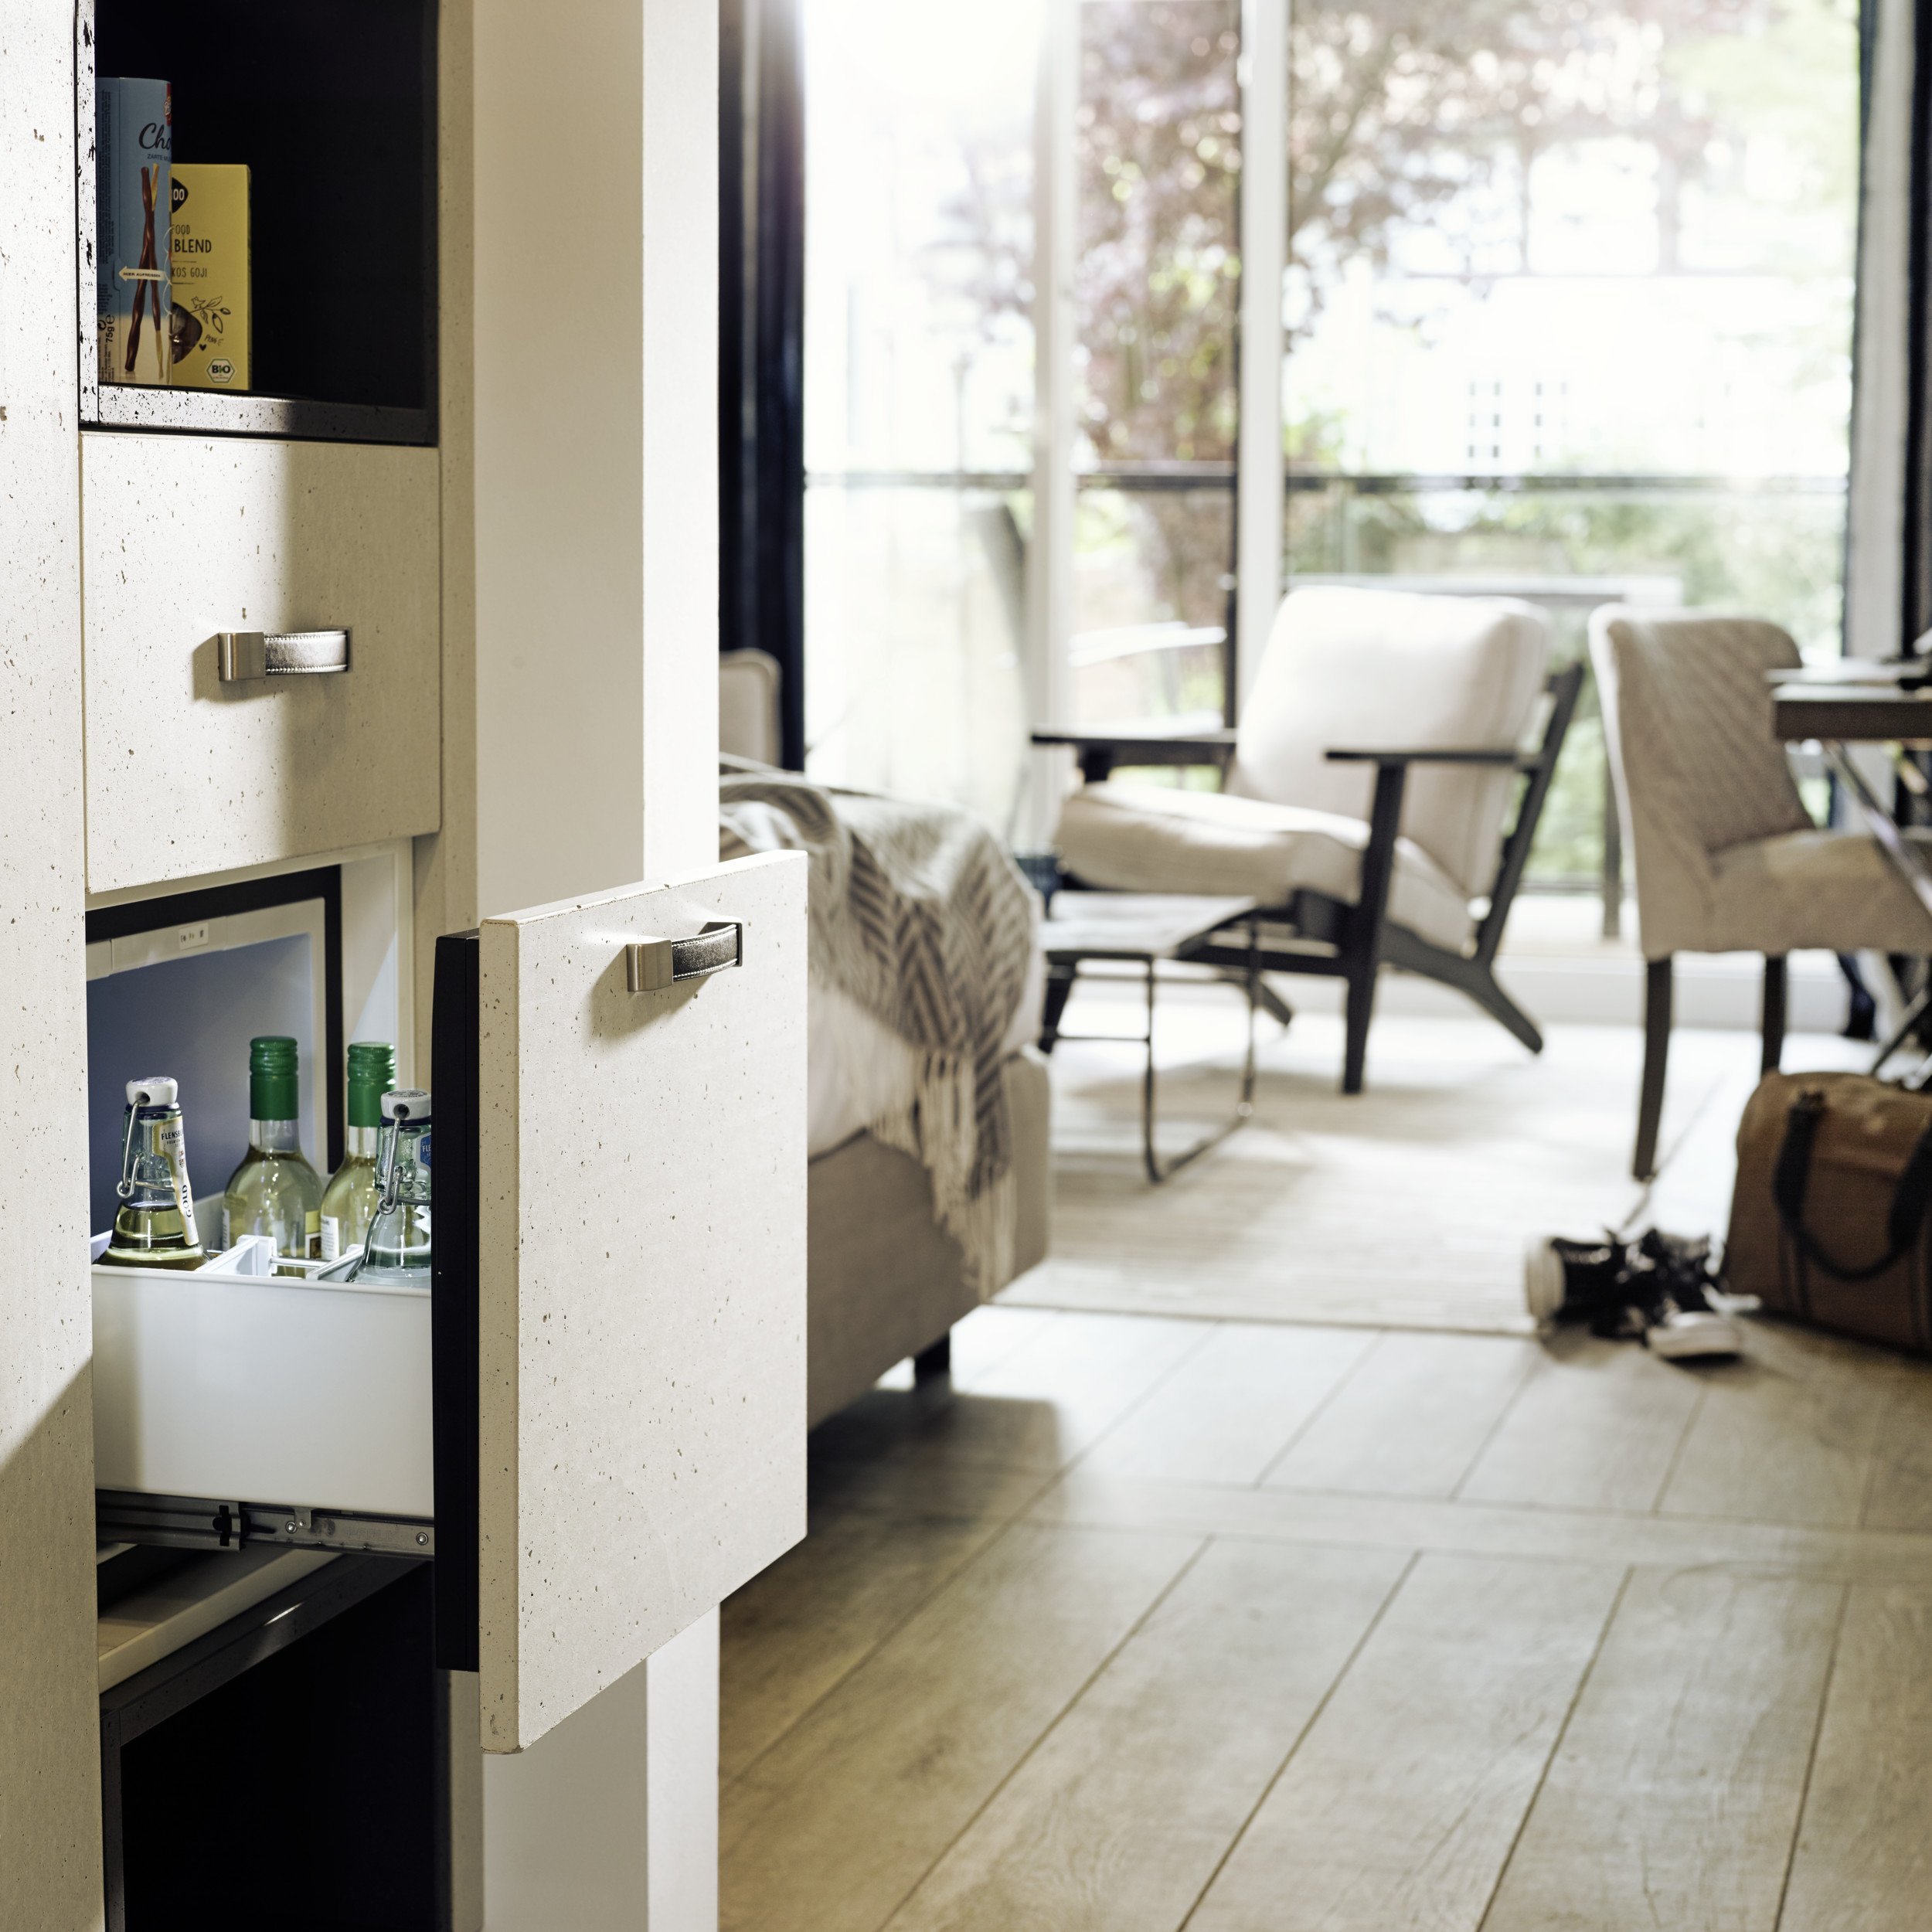 DOMETIC DRAWER MINIBAR RECOGNIZED FOR USABILITY